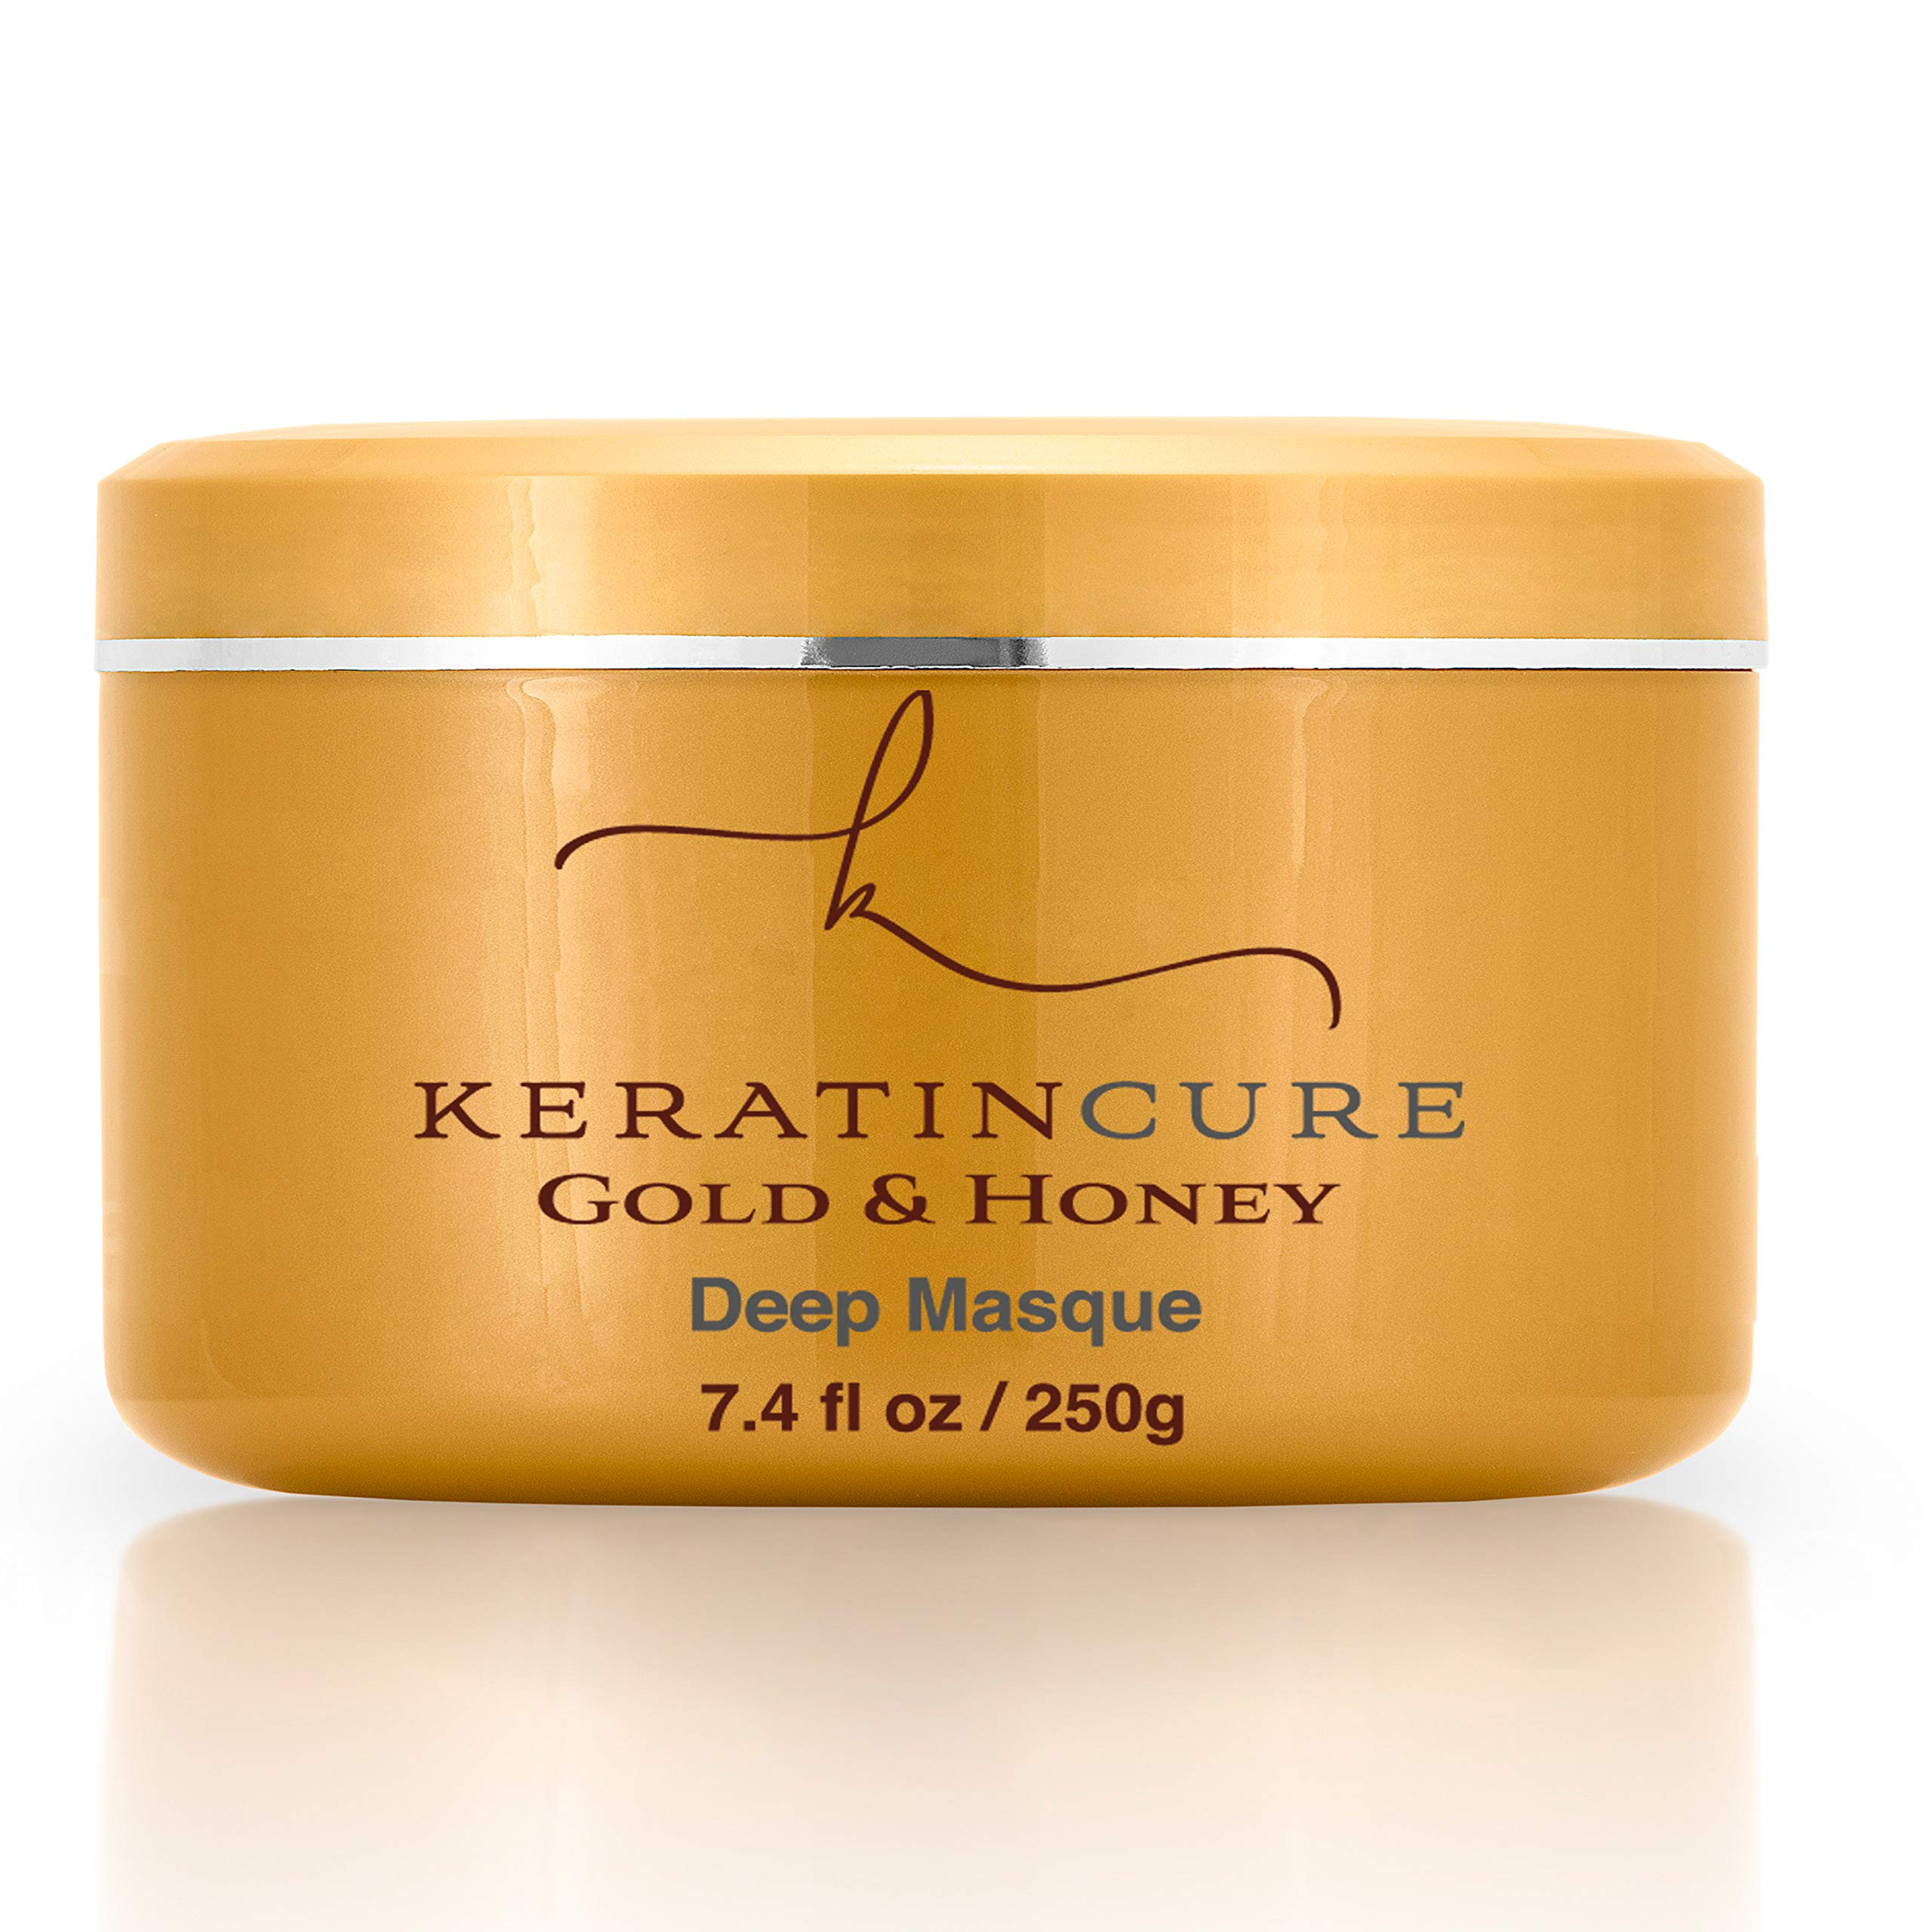 Keratin Cure Gold and Honey Deep Hair Mask Masque Conditioning Strengthen Dry Damaged Promotes Growth Relieves Scalp for all hair Moisturizing Reparation, Argan, Coconut, Marula Women Men Beards 8 Oz